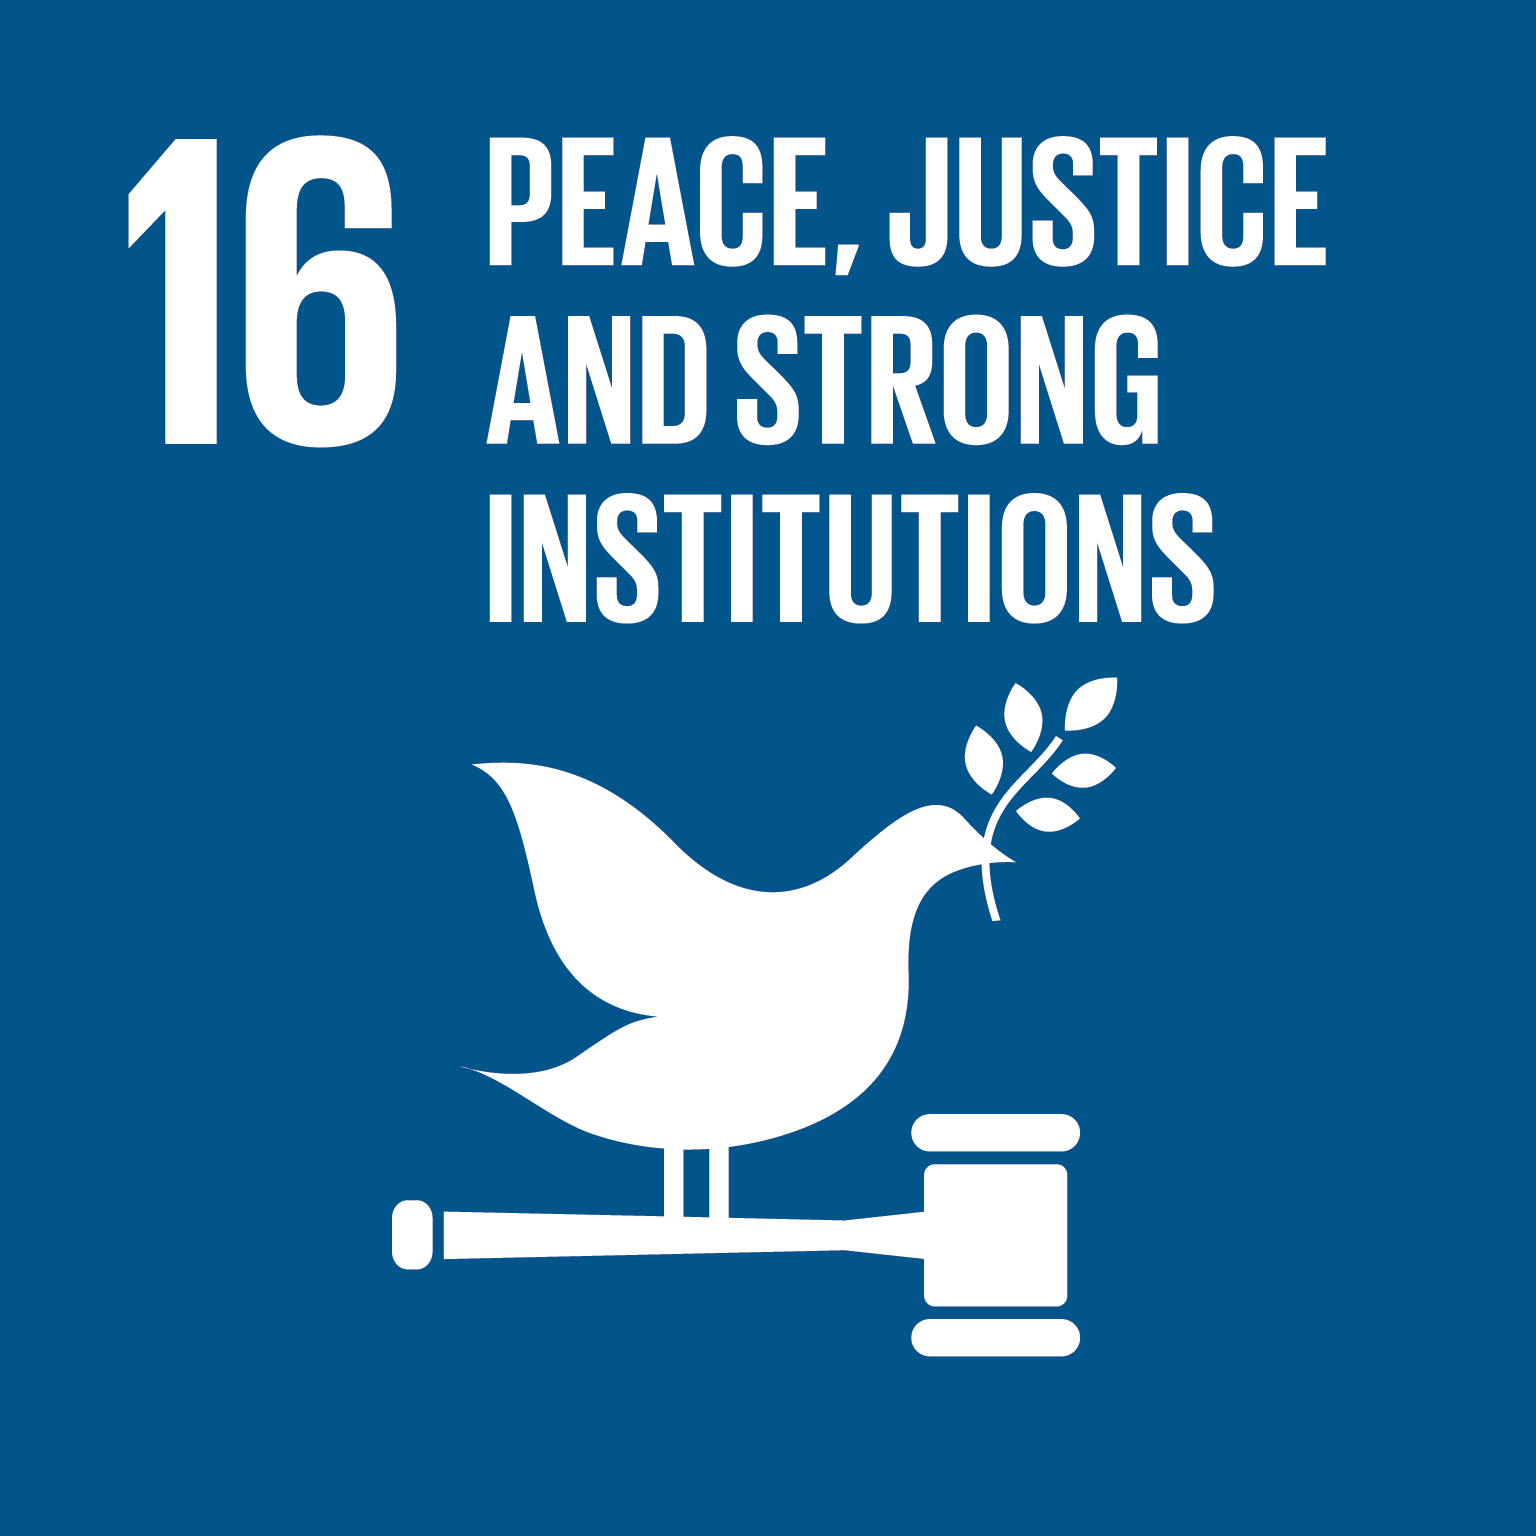 Peace, justice and strong institutions (16)